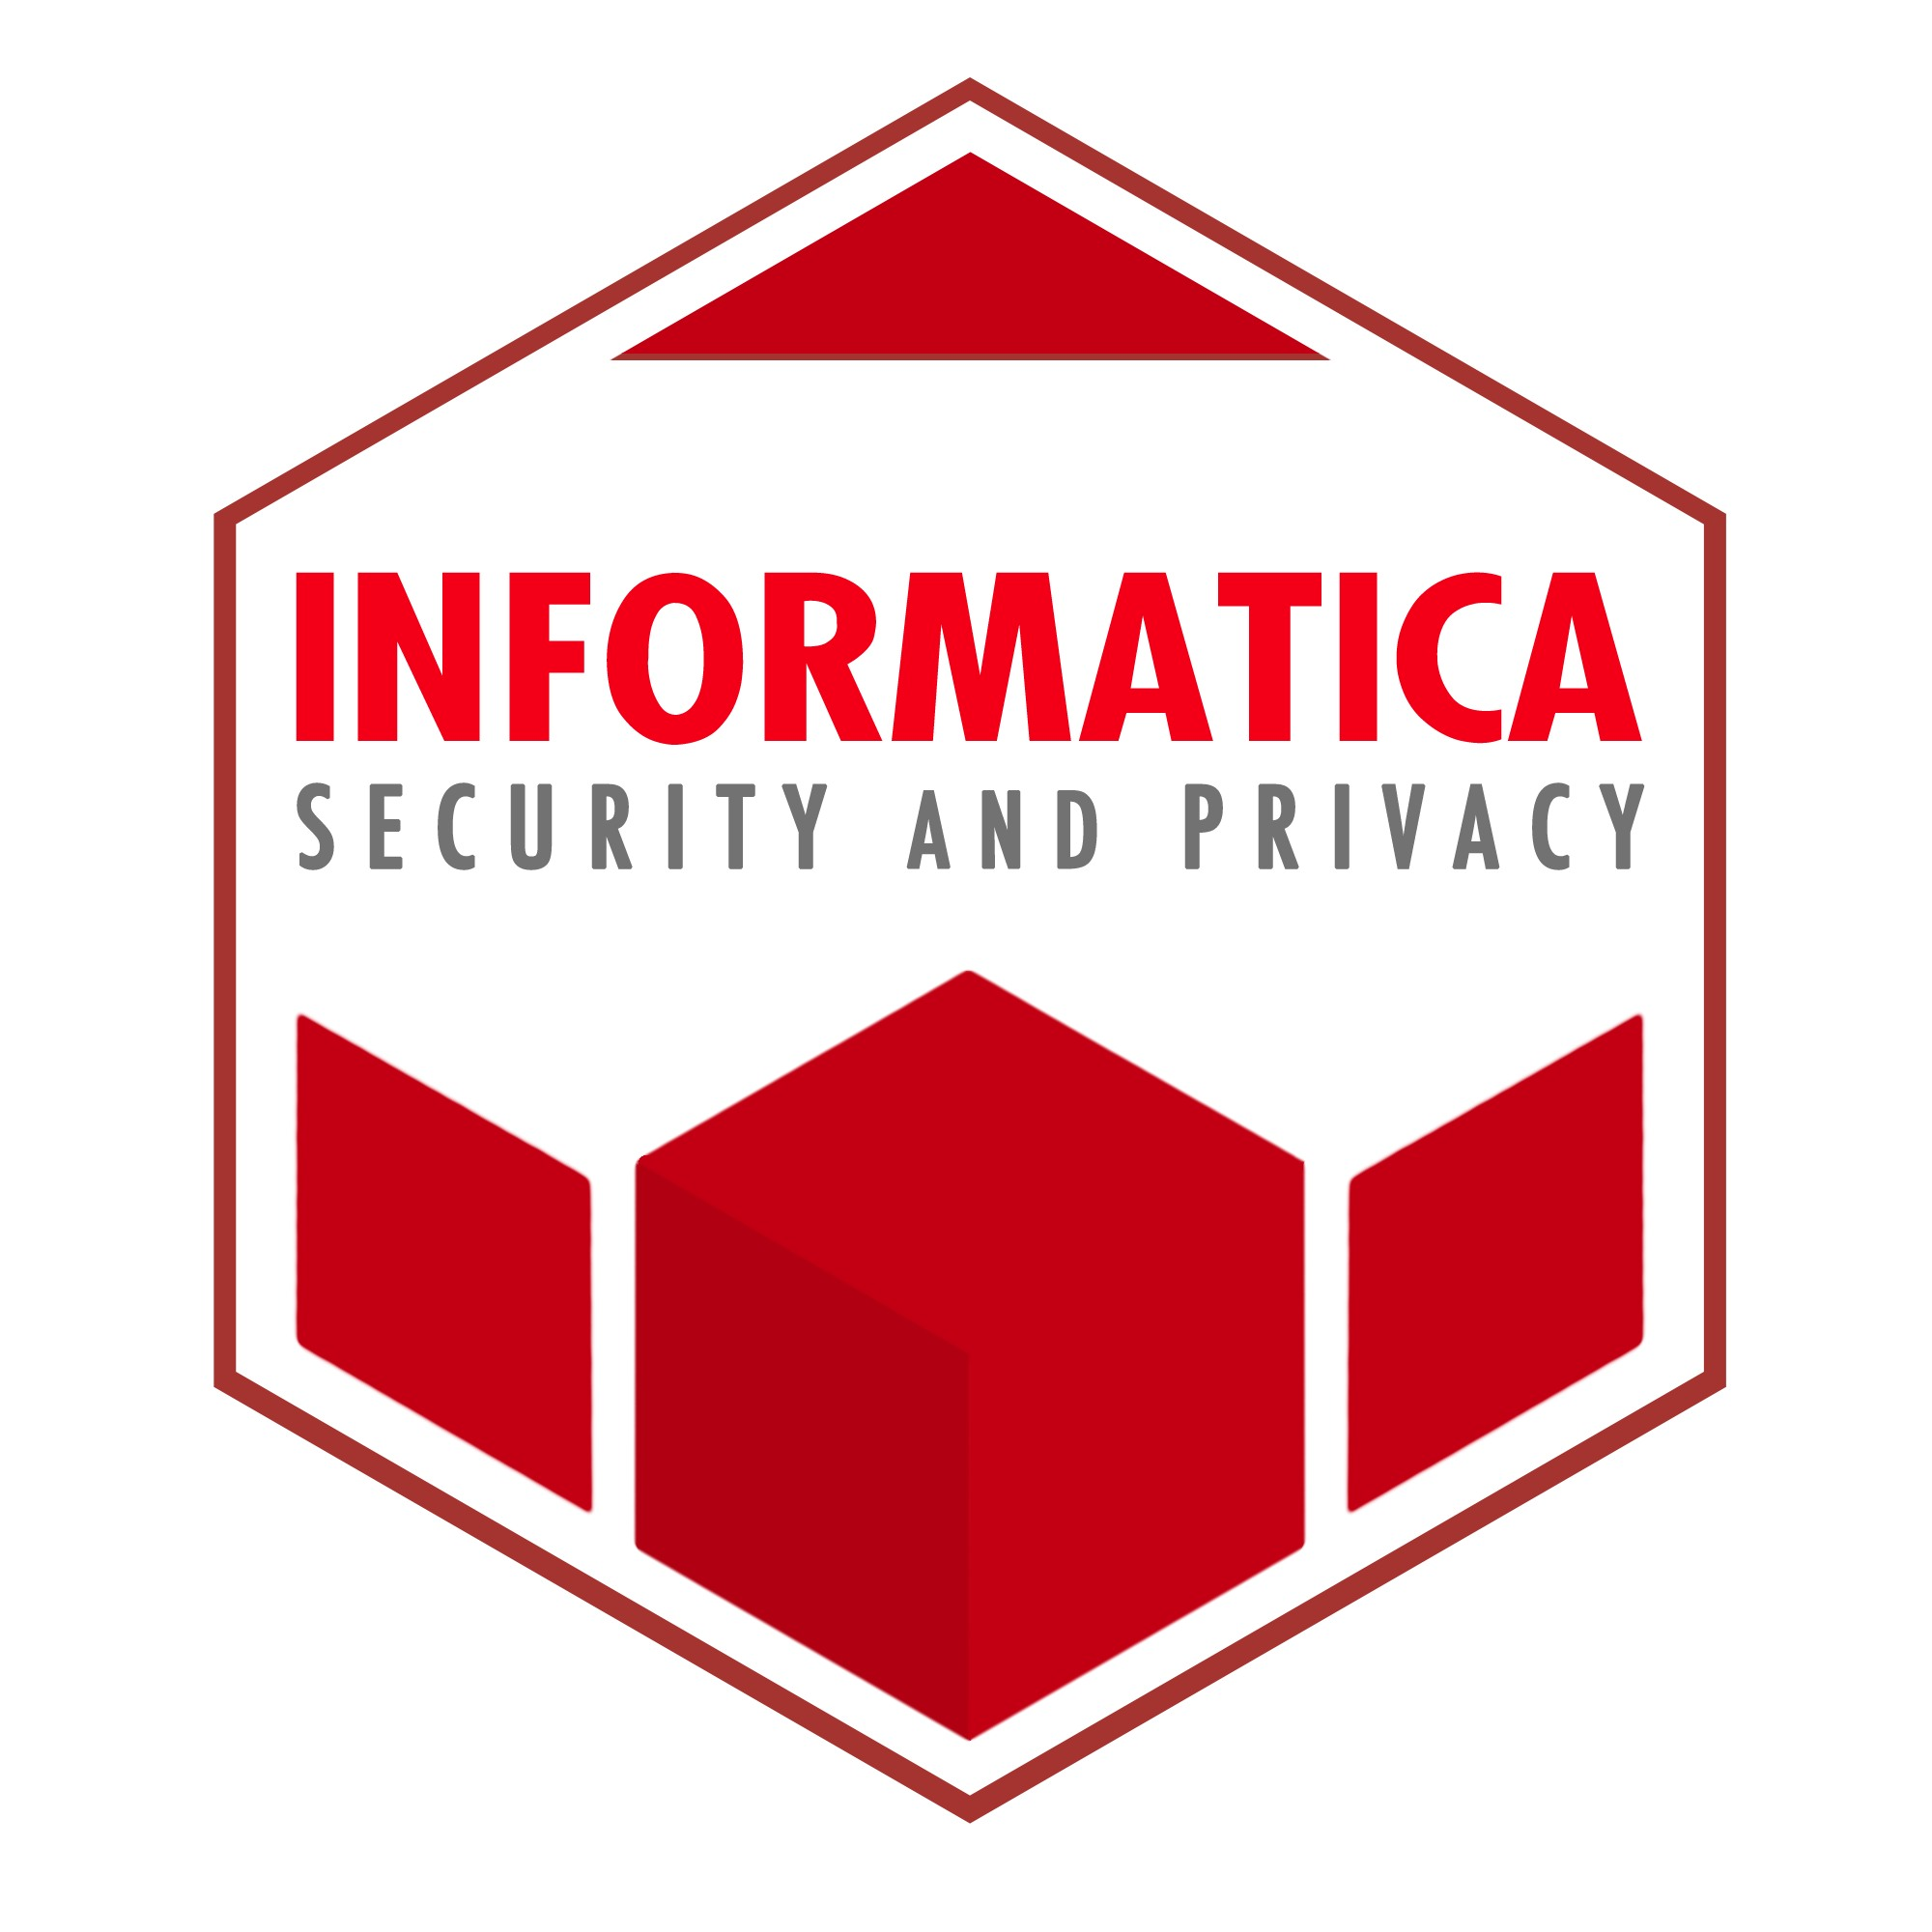 Informatica Security and Privacy